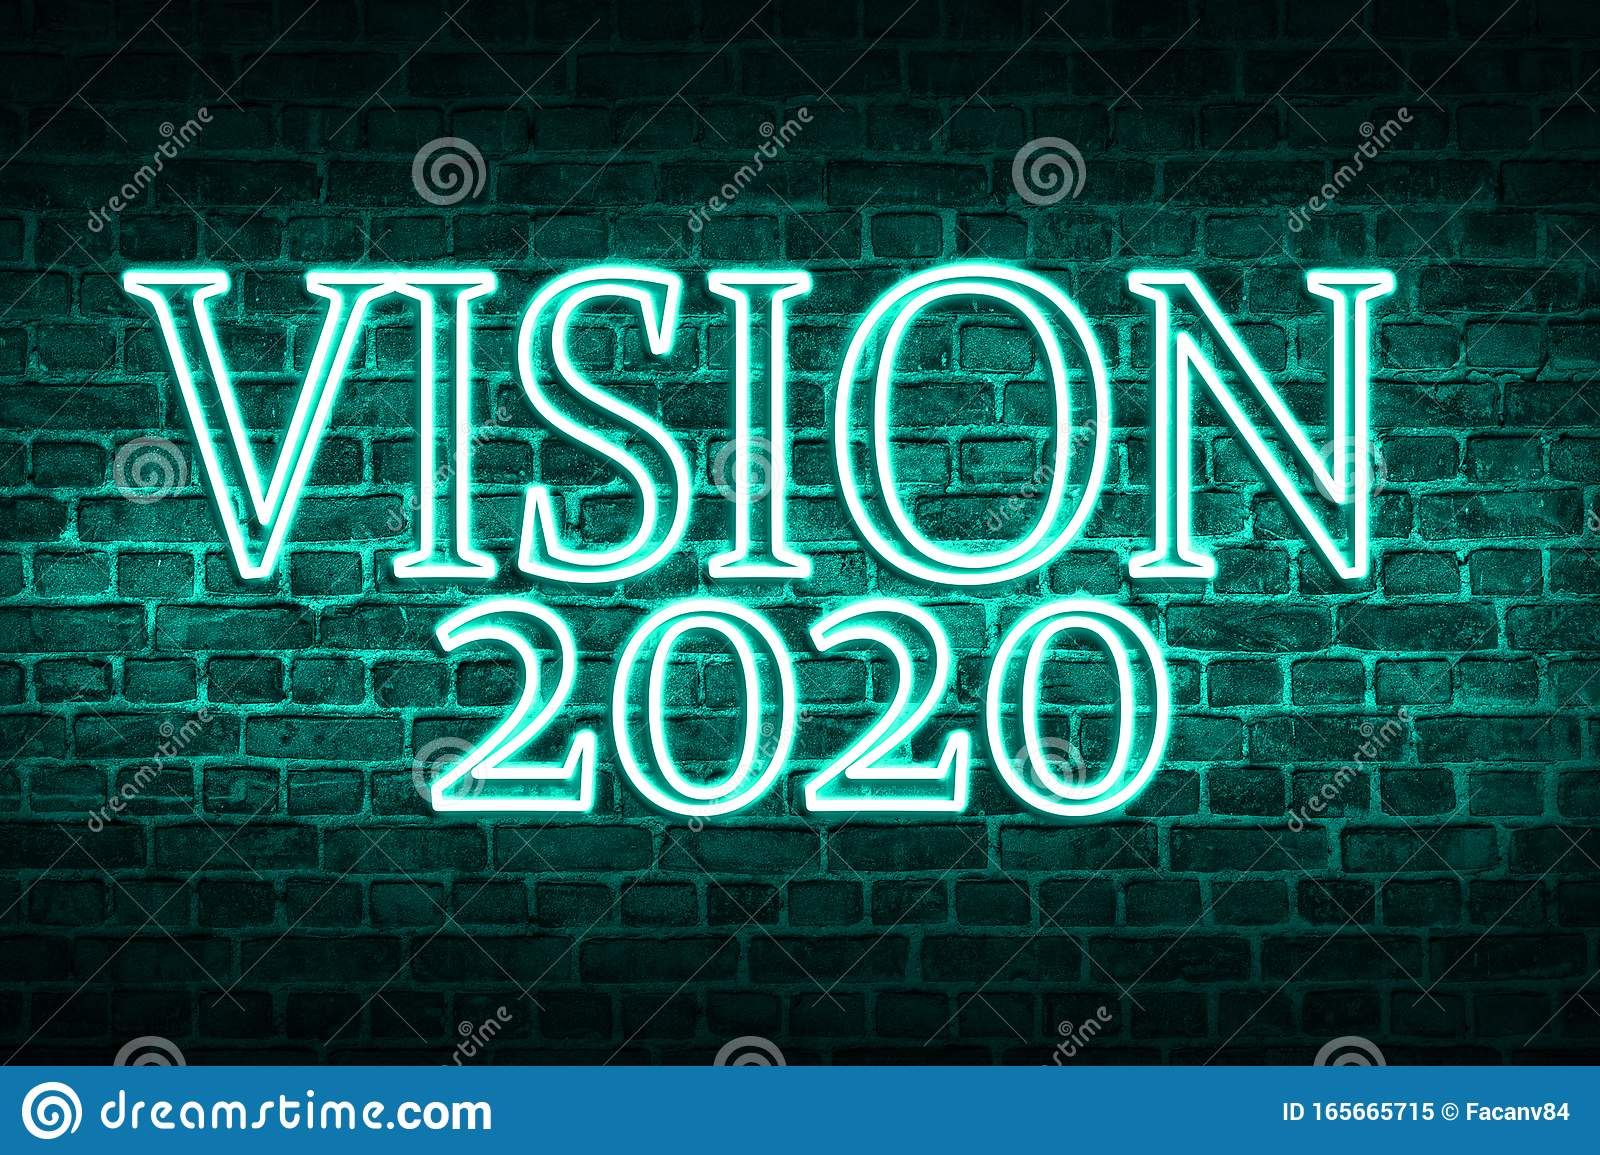 A Conceptual Message Written By The Neon Light On The Wall Shows Vision 2020 Business Motivation Inspiration Concepts Ideas Stock Image Image Of Concept Inspiration 165665715